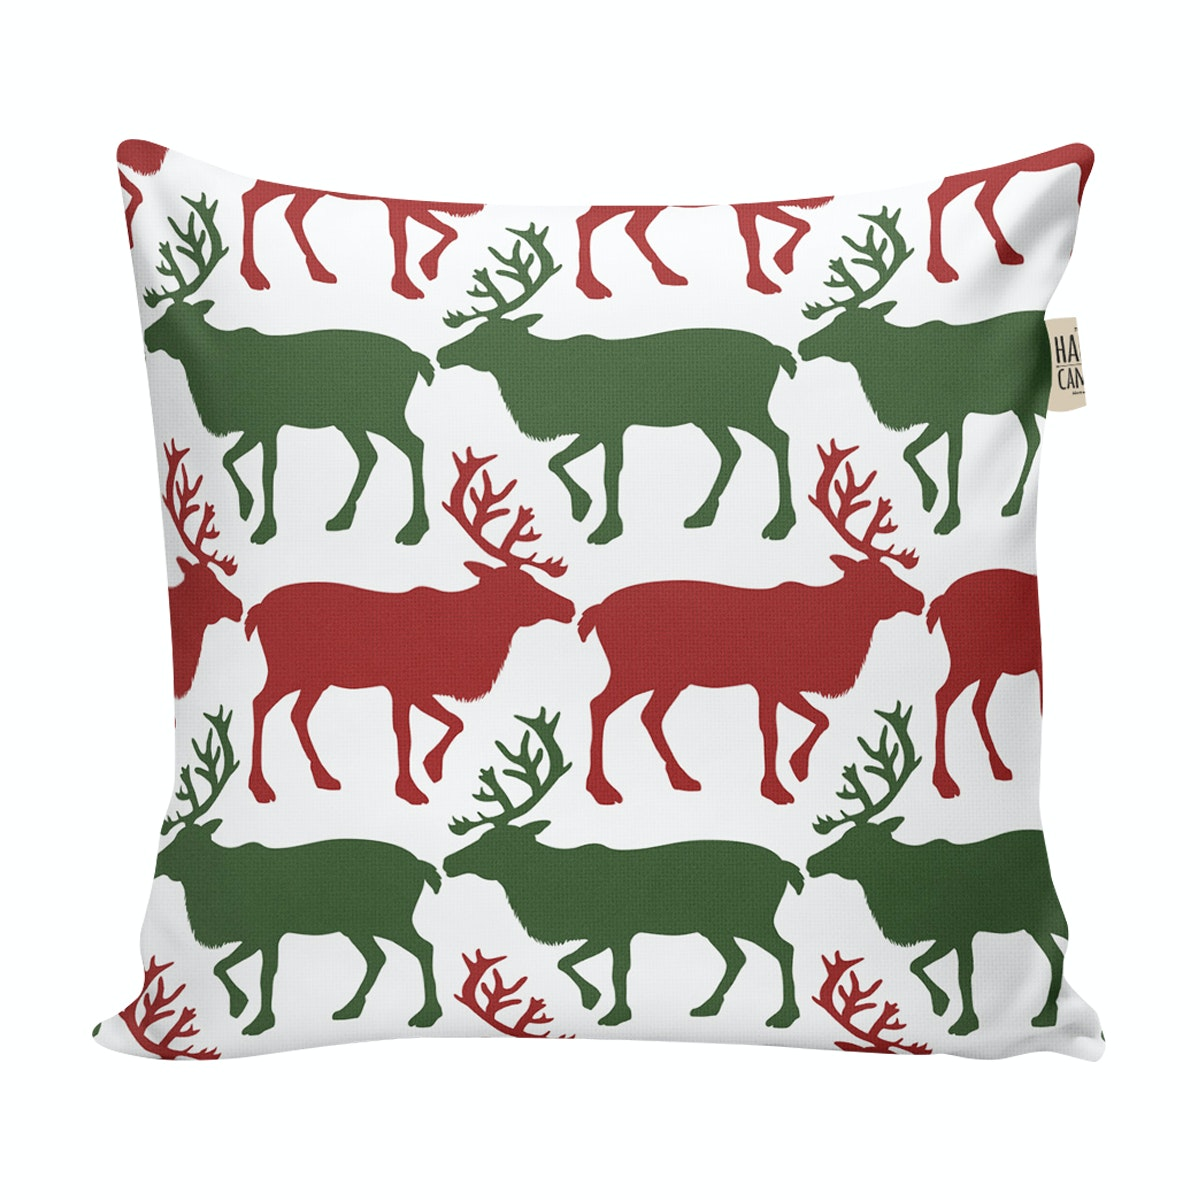 The Happy Camper Christmas Reindeer - cushion